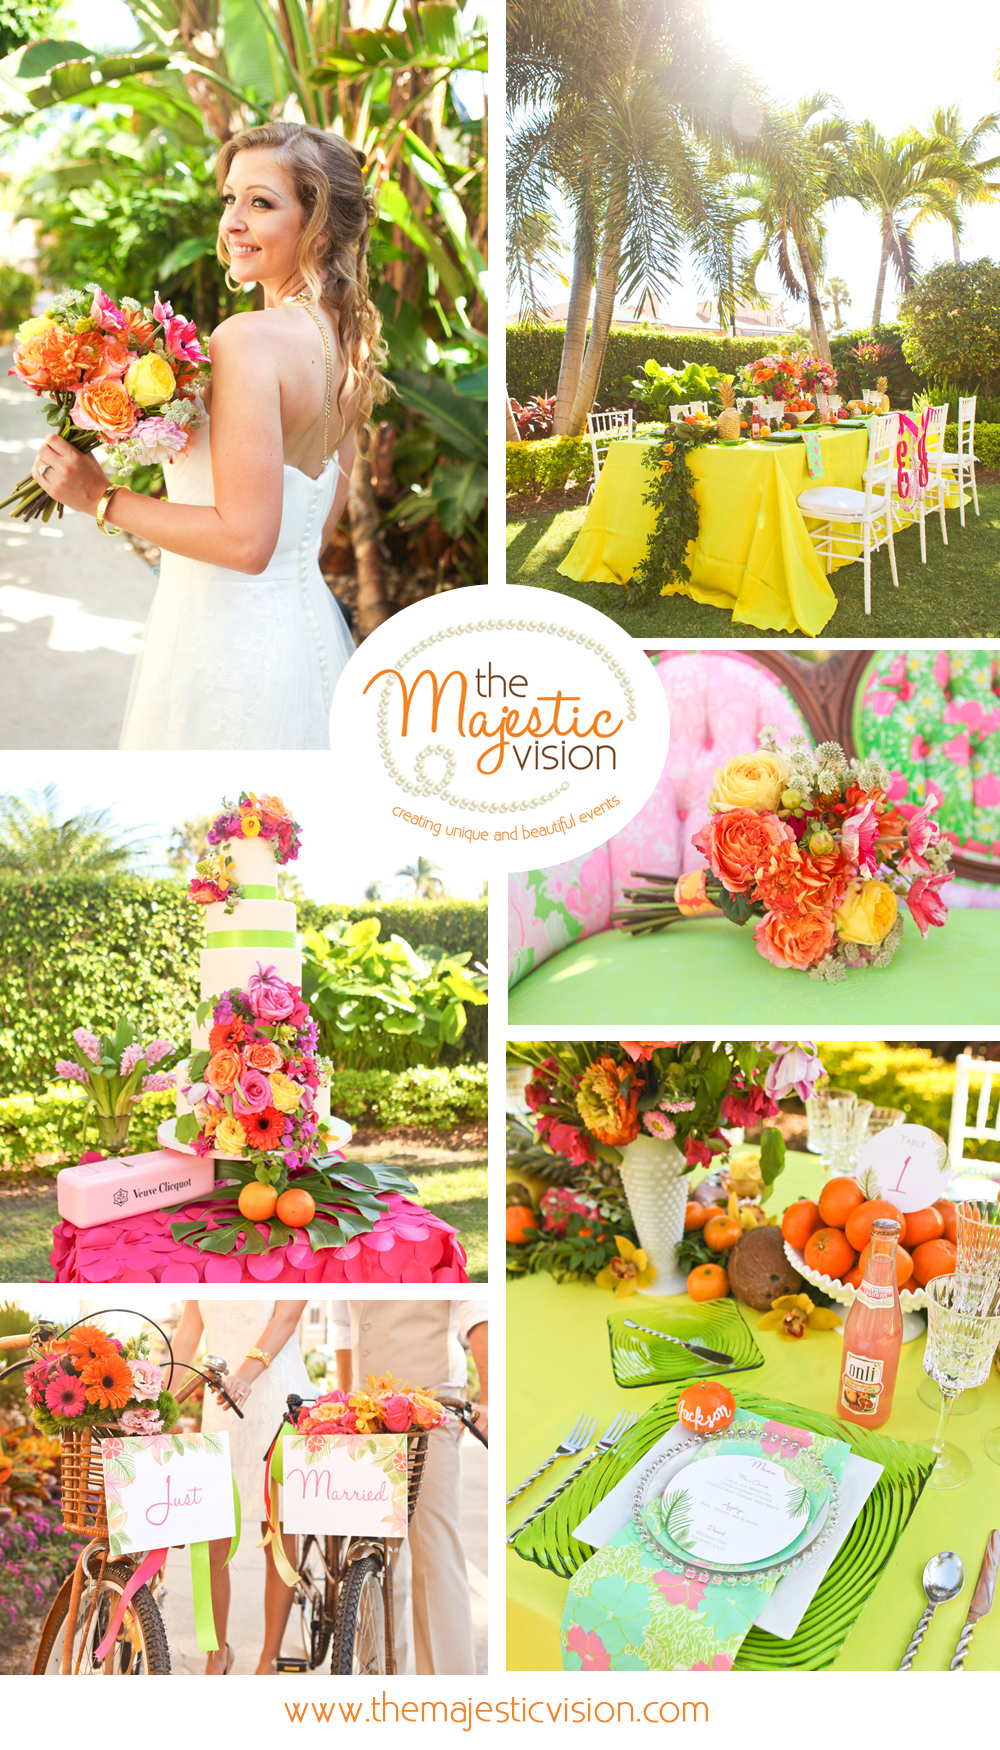 Elegant Lilly Pulitzer Inspired Wedding Tablescape with Orange, Yellow and Pink Flowers | The Majestic Vision Wedding Planning | The Colony Hotel in Palm Beach, FL | www.themajesticvision.com | Krystal Zaskey Photography